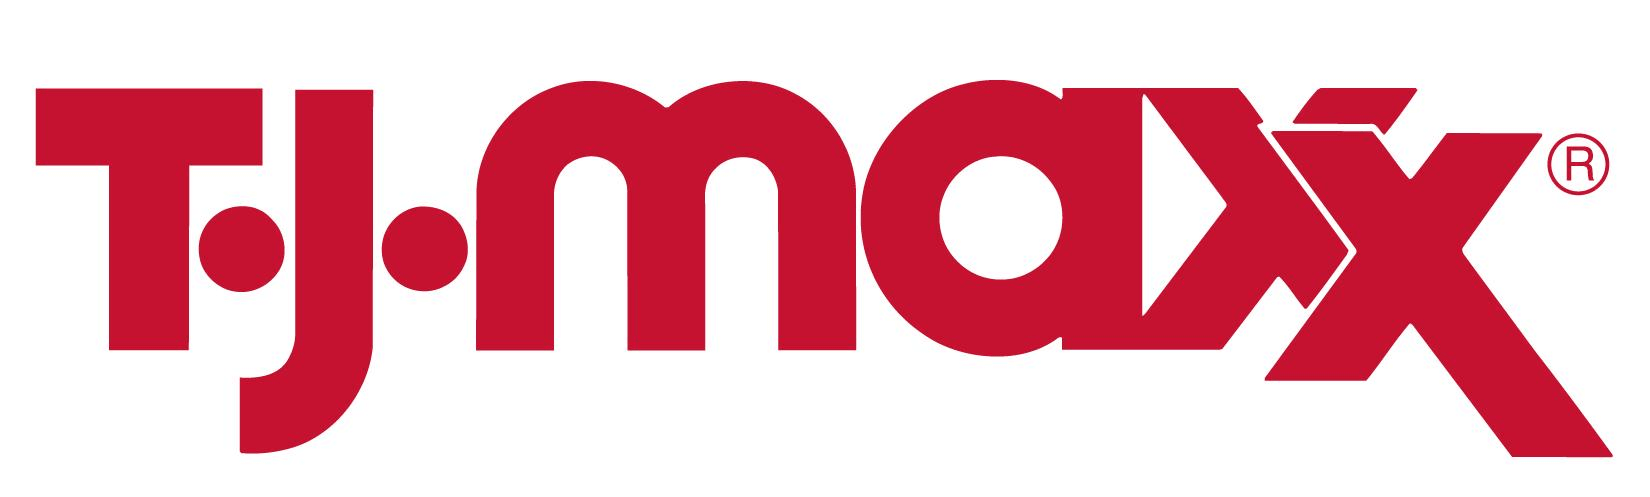 Complete list of TJ Maxx complaints. Scam, unauthorized charges, rip off, defective product, poor service.